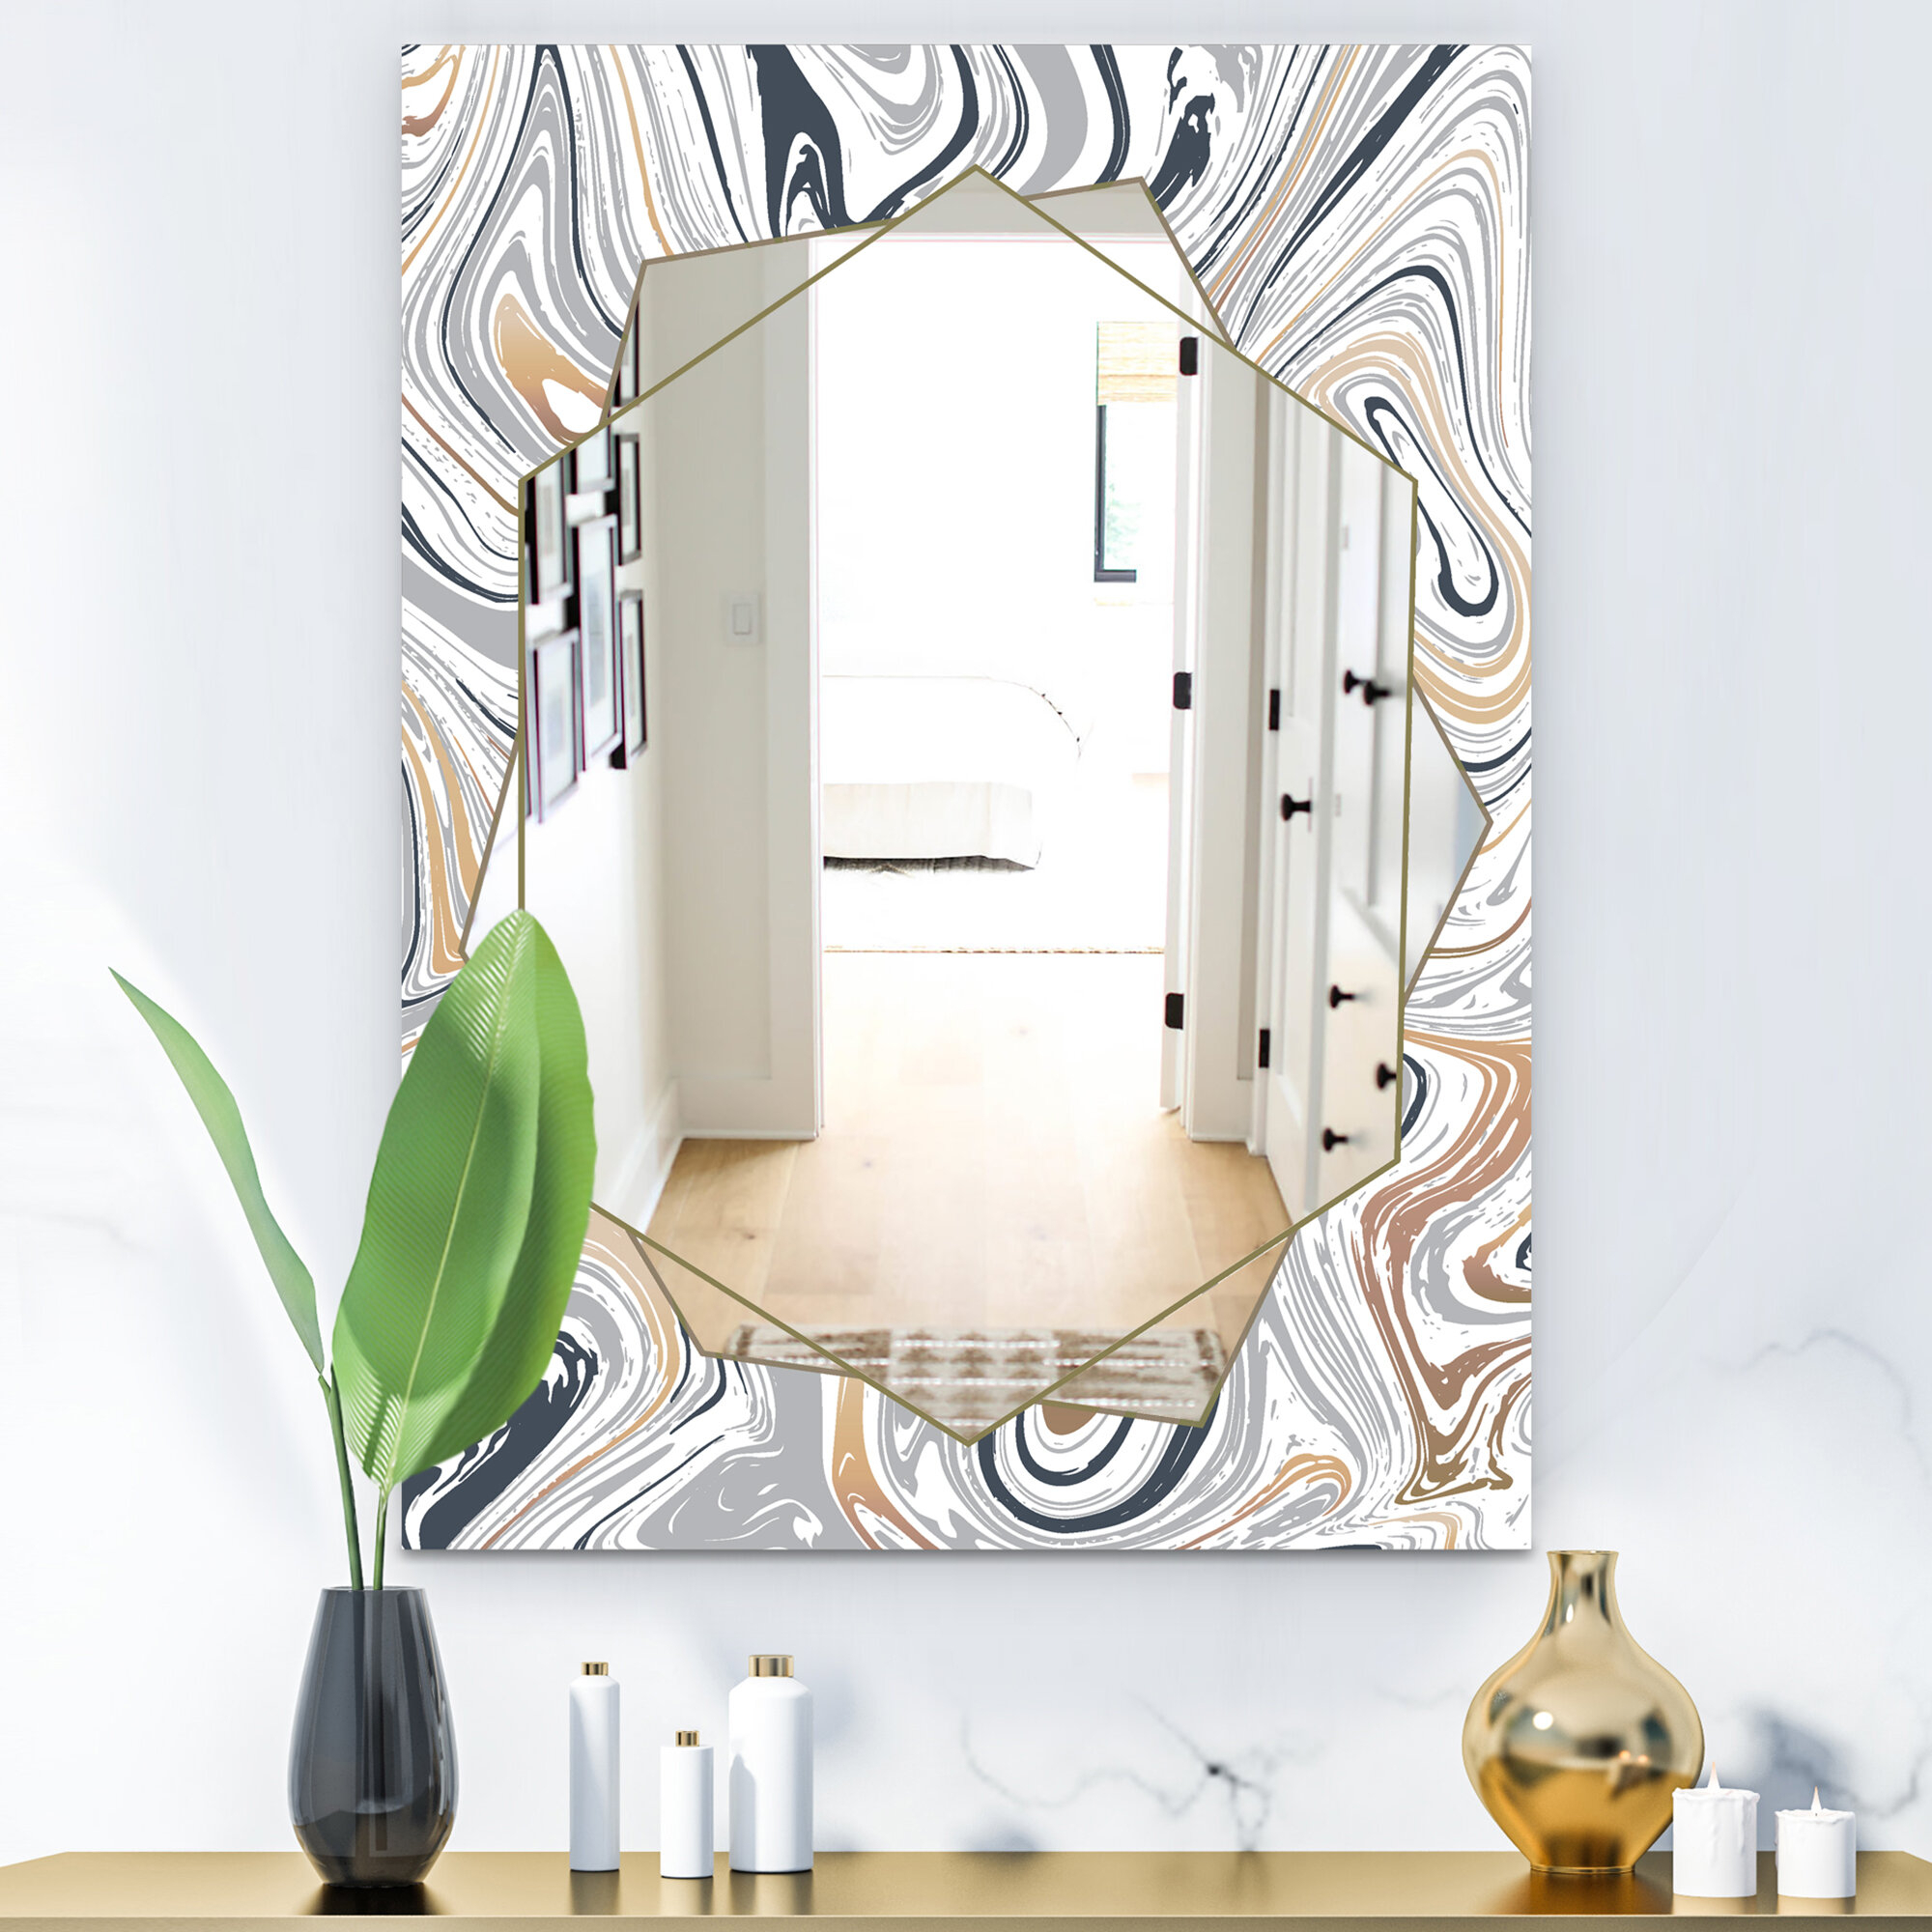 Marbled Diamond Traditional Frameless Bathroom Mirror Regarding Traditional Frameless Diamond Wall Mirrors (View 6 of 20)